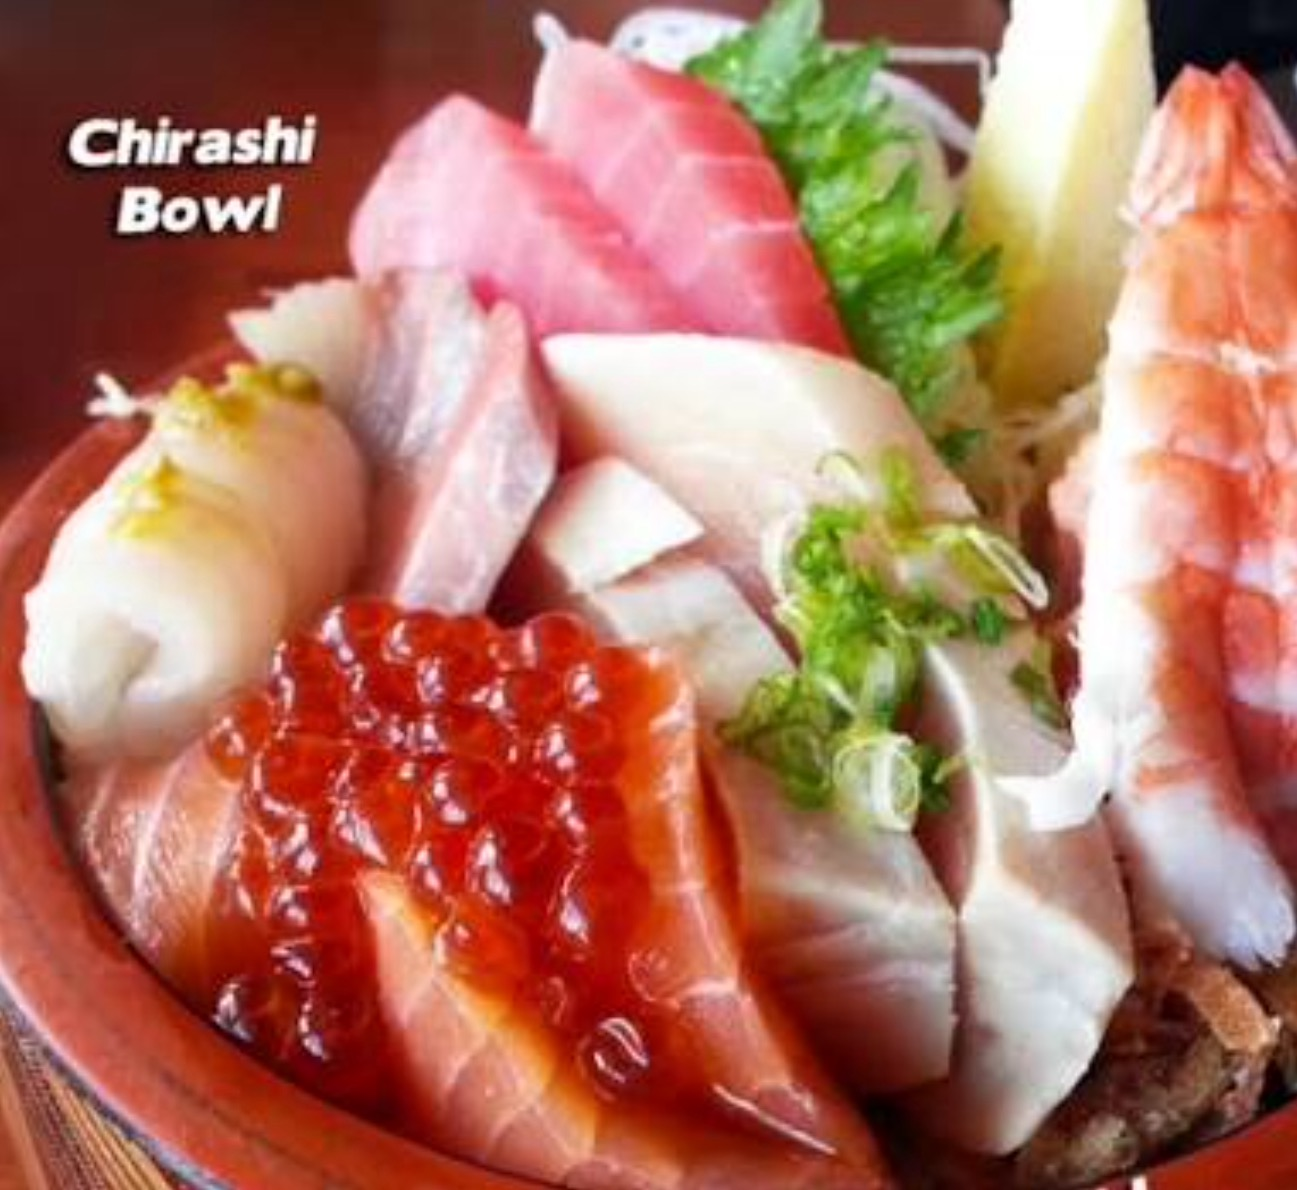 Chirashi salmon / tuna / shrimp